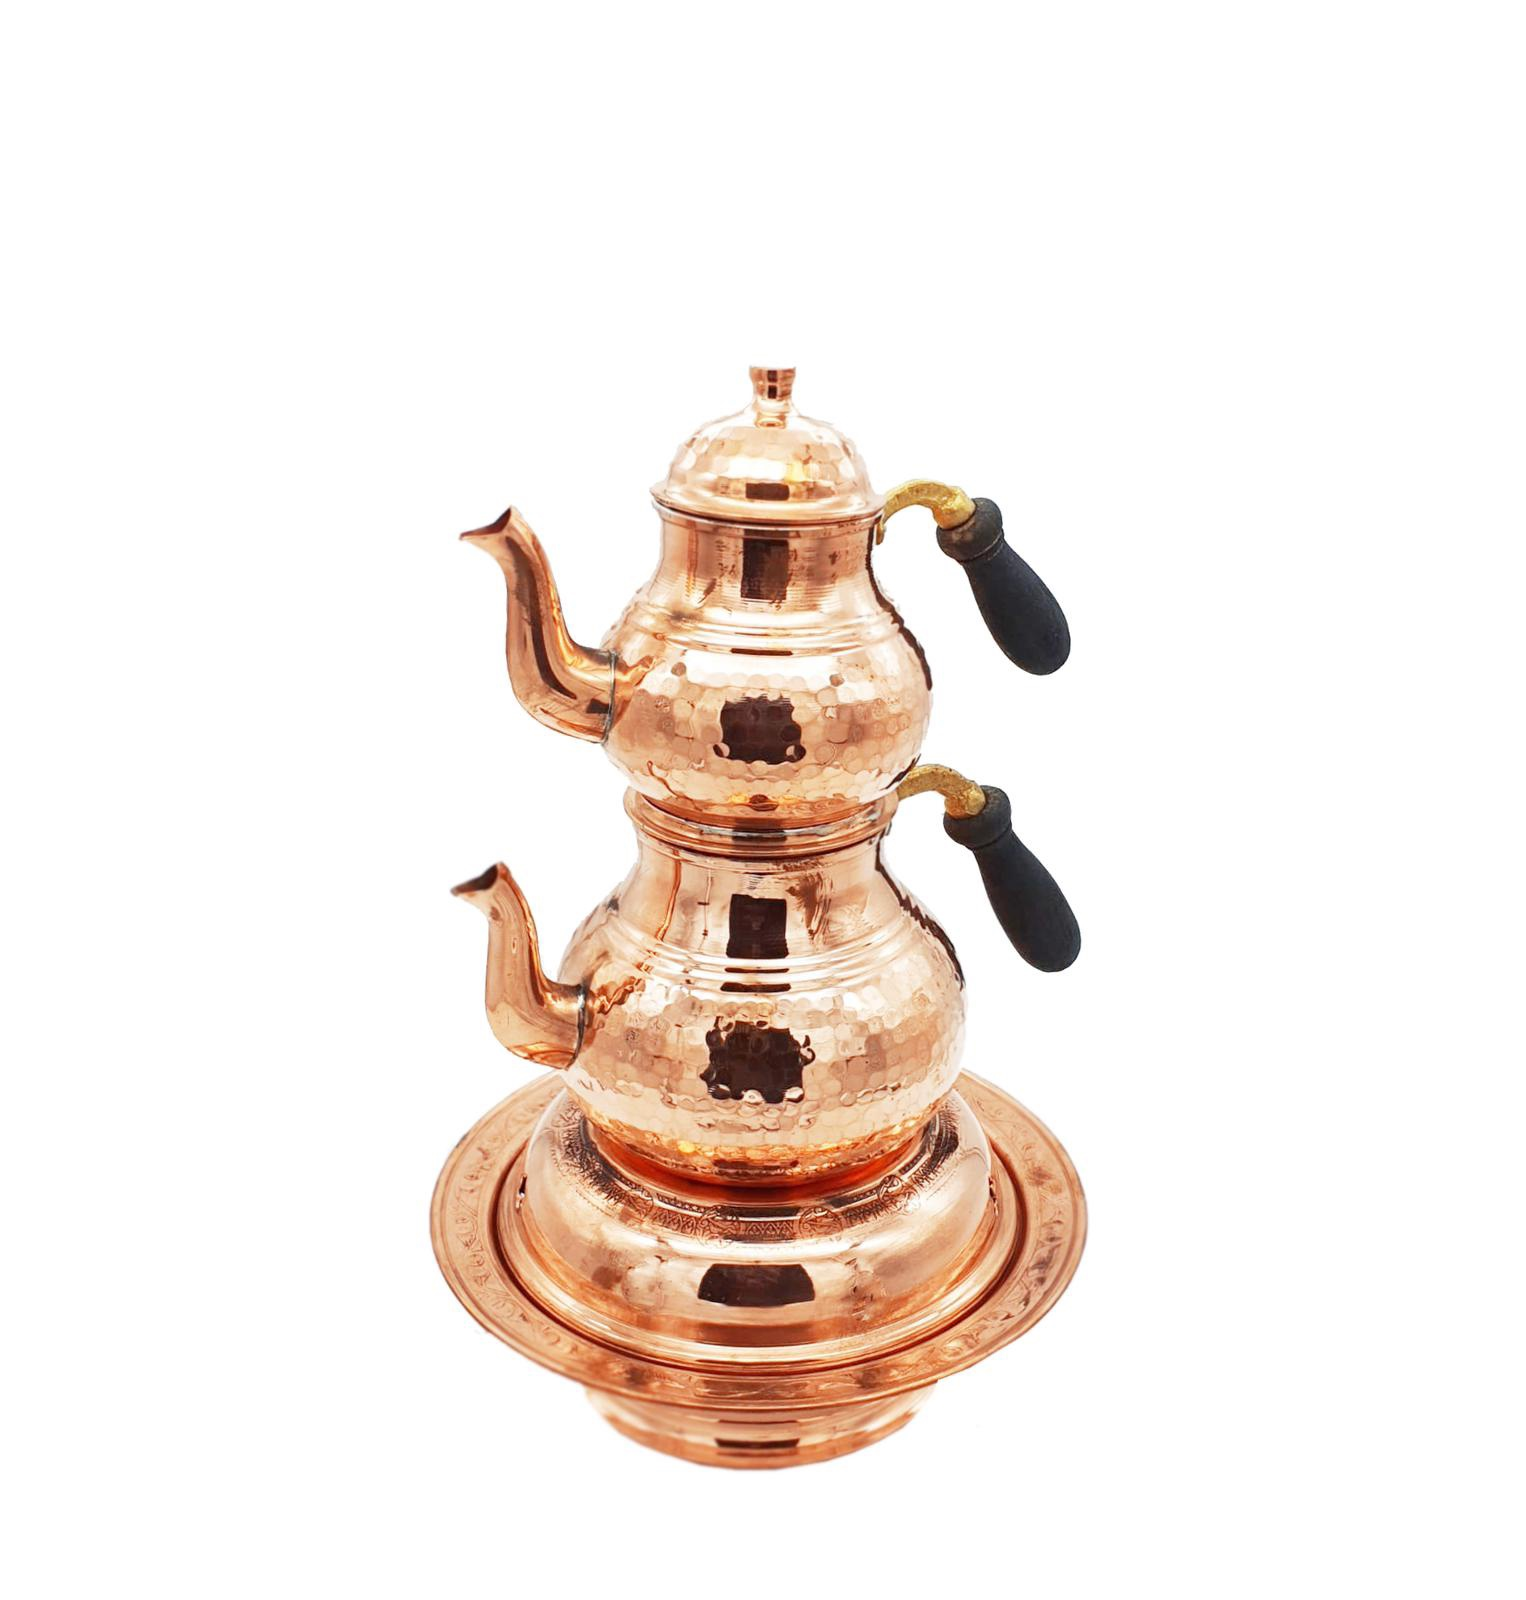 Buy Turkish Tea Pot with Candle Warmer - Large